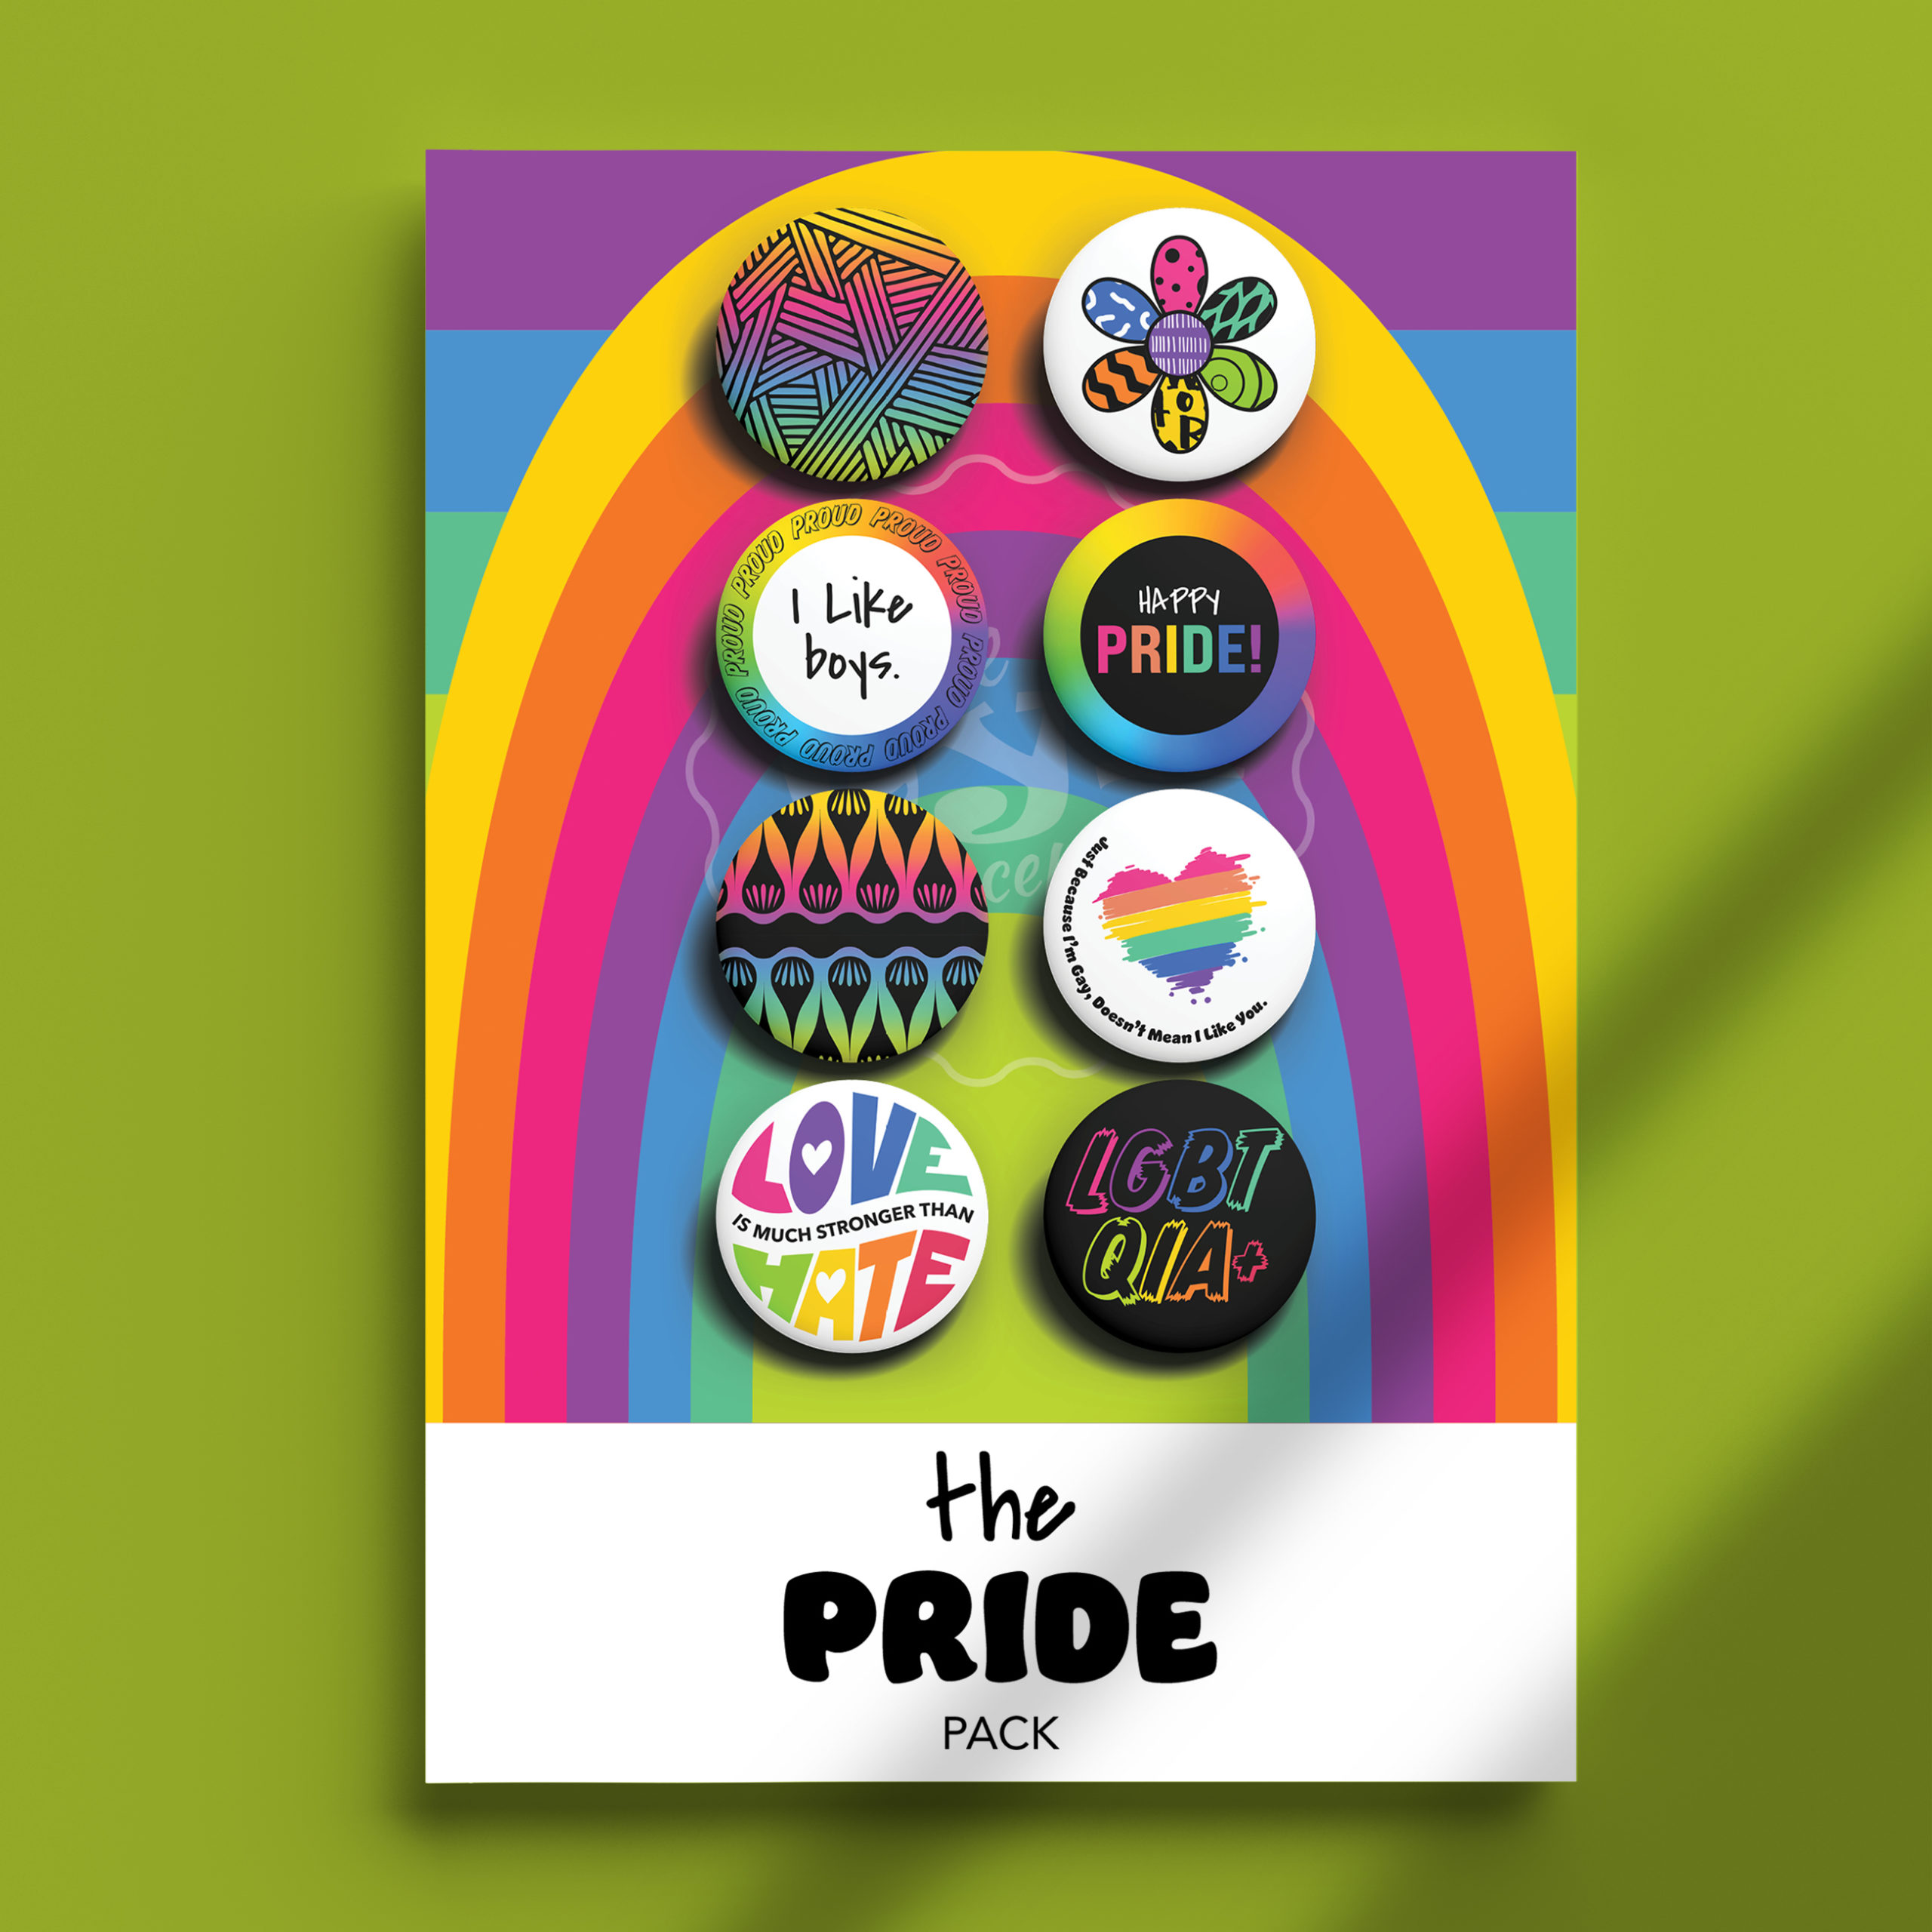 Image of The Pride I Like Boys Pack pins on package